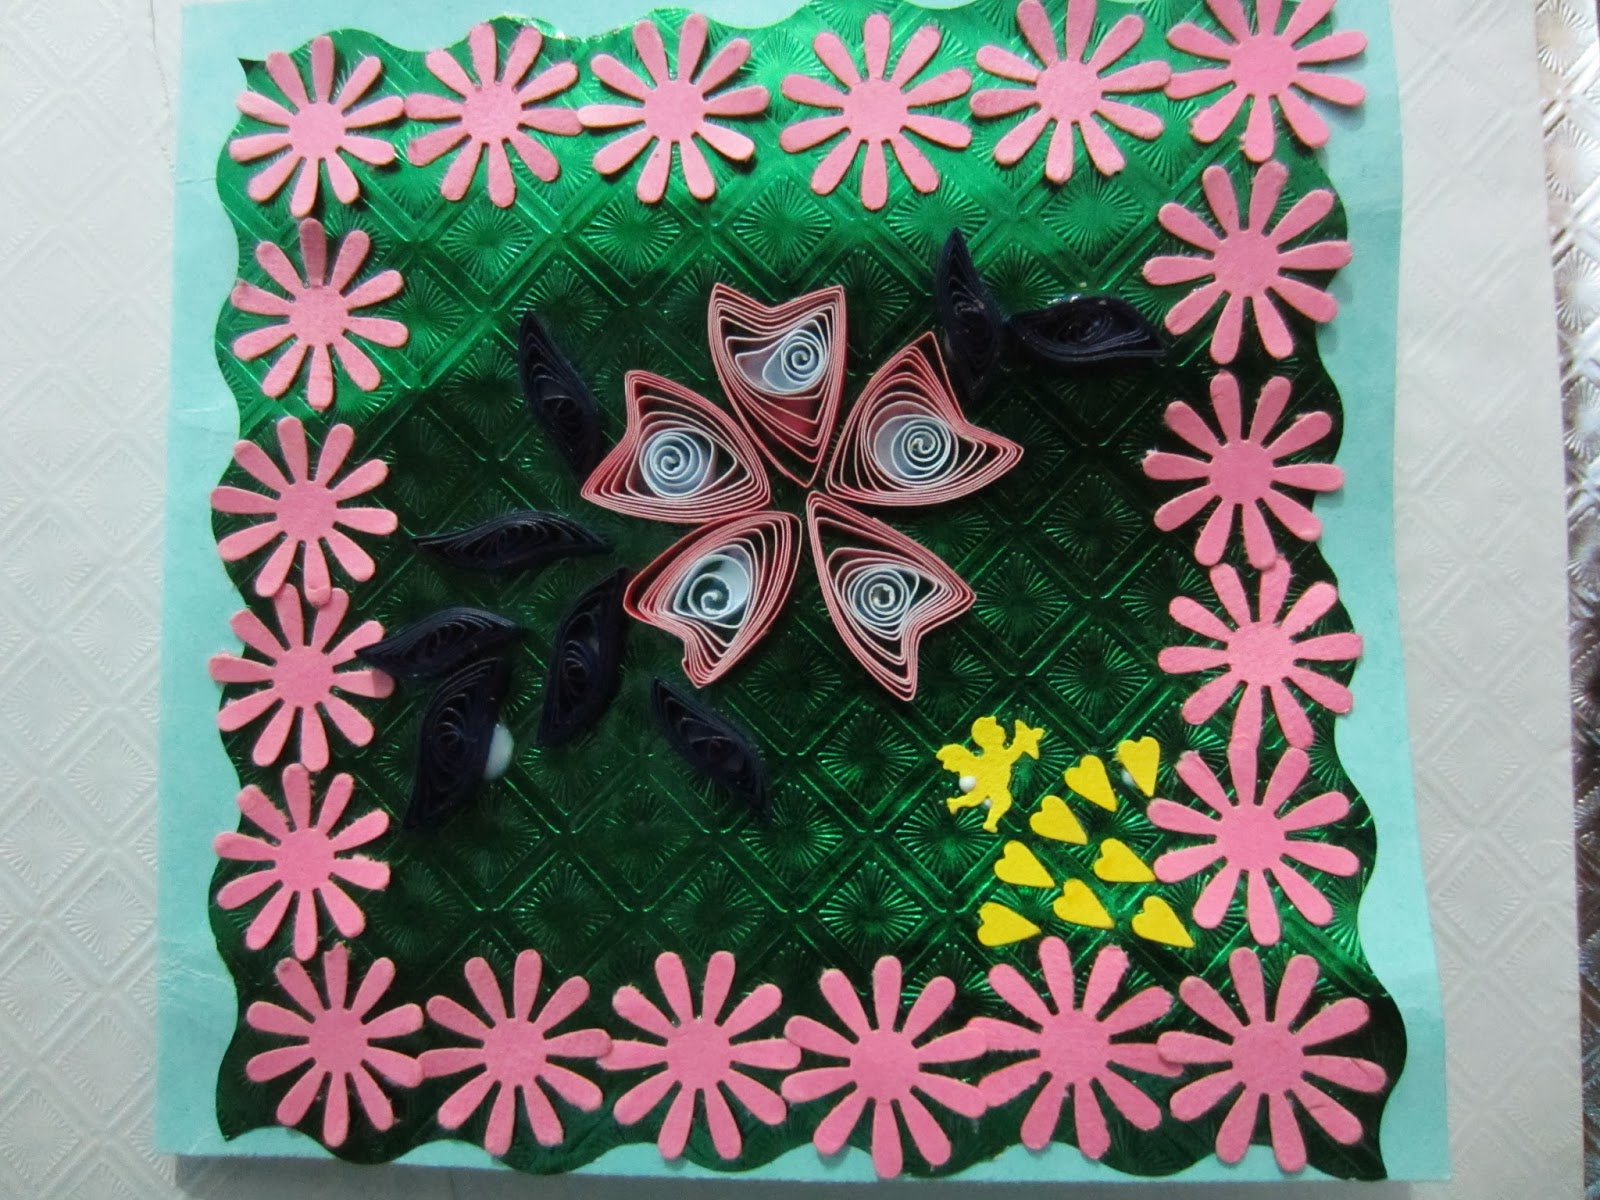 Pinkys crafts and paintings hand made cards hand made greeting cards made of chart paper and decorated with quilling work and punched flowers and cupids mightylinksfo